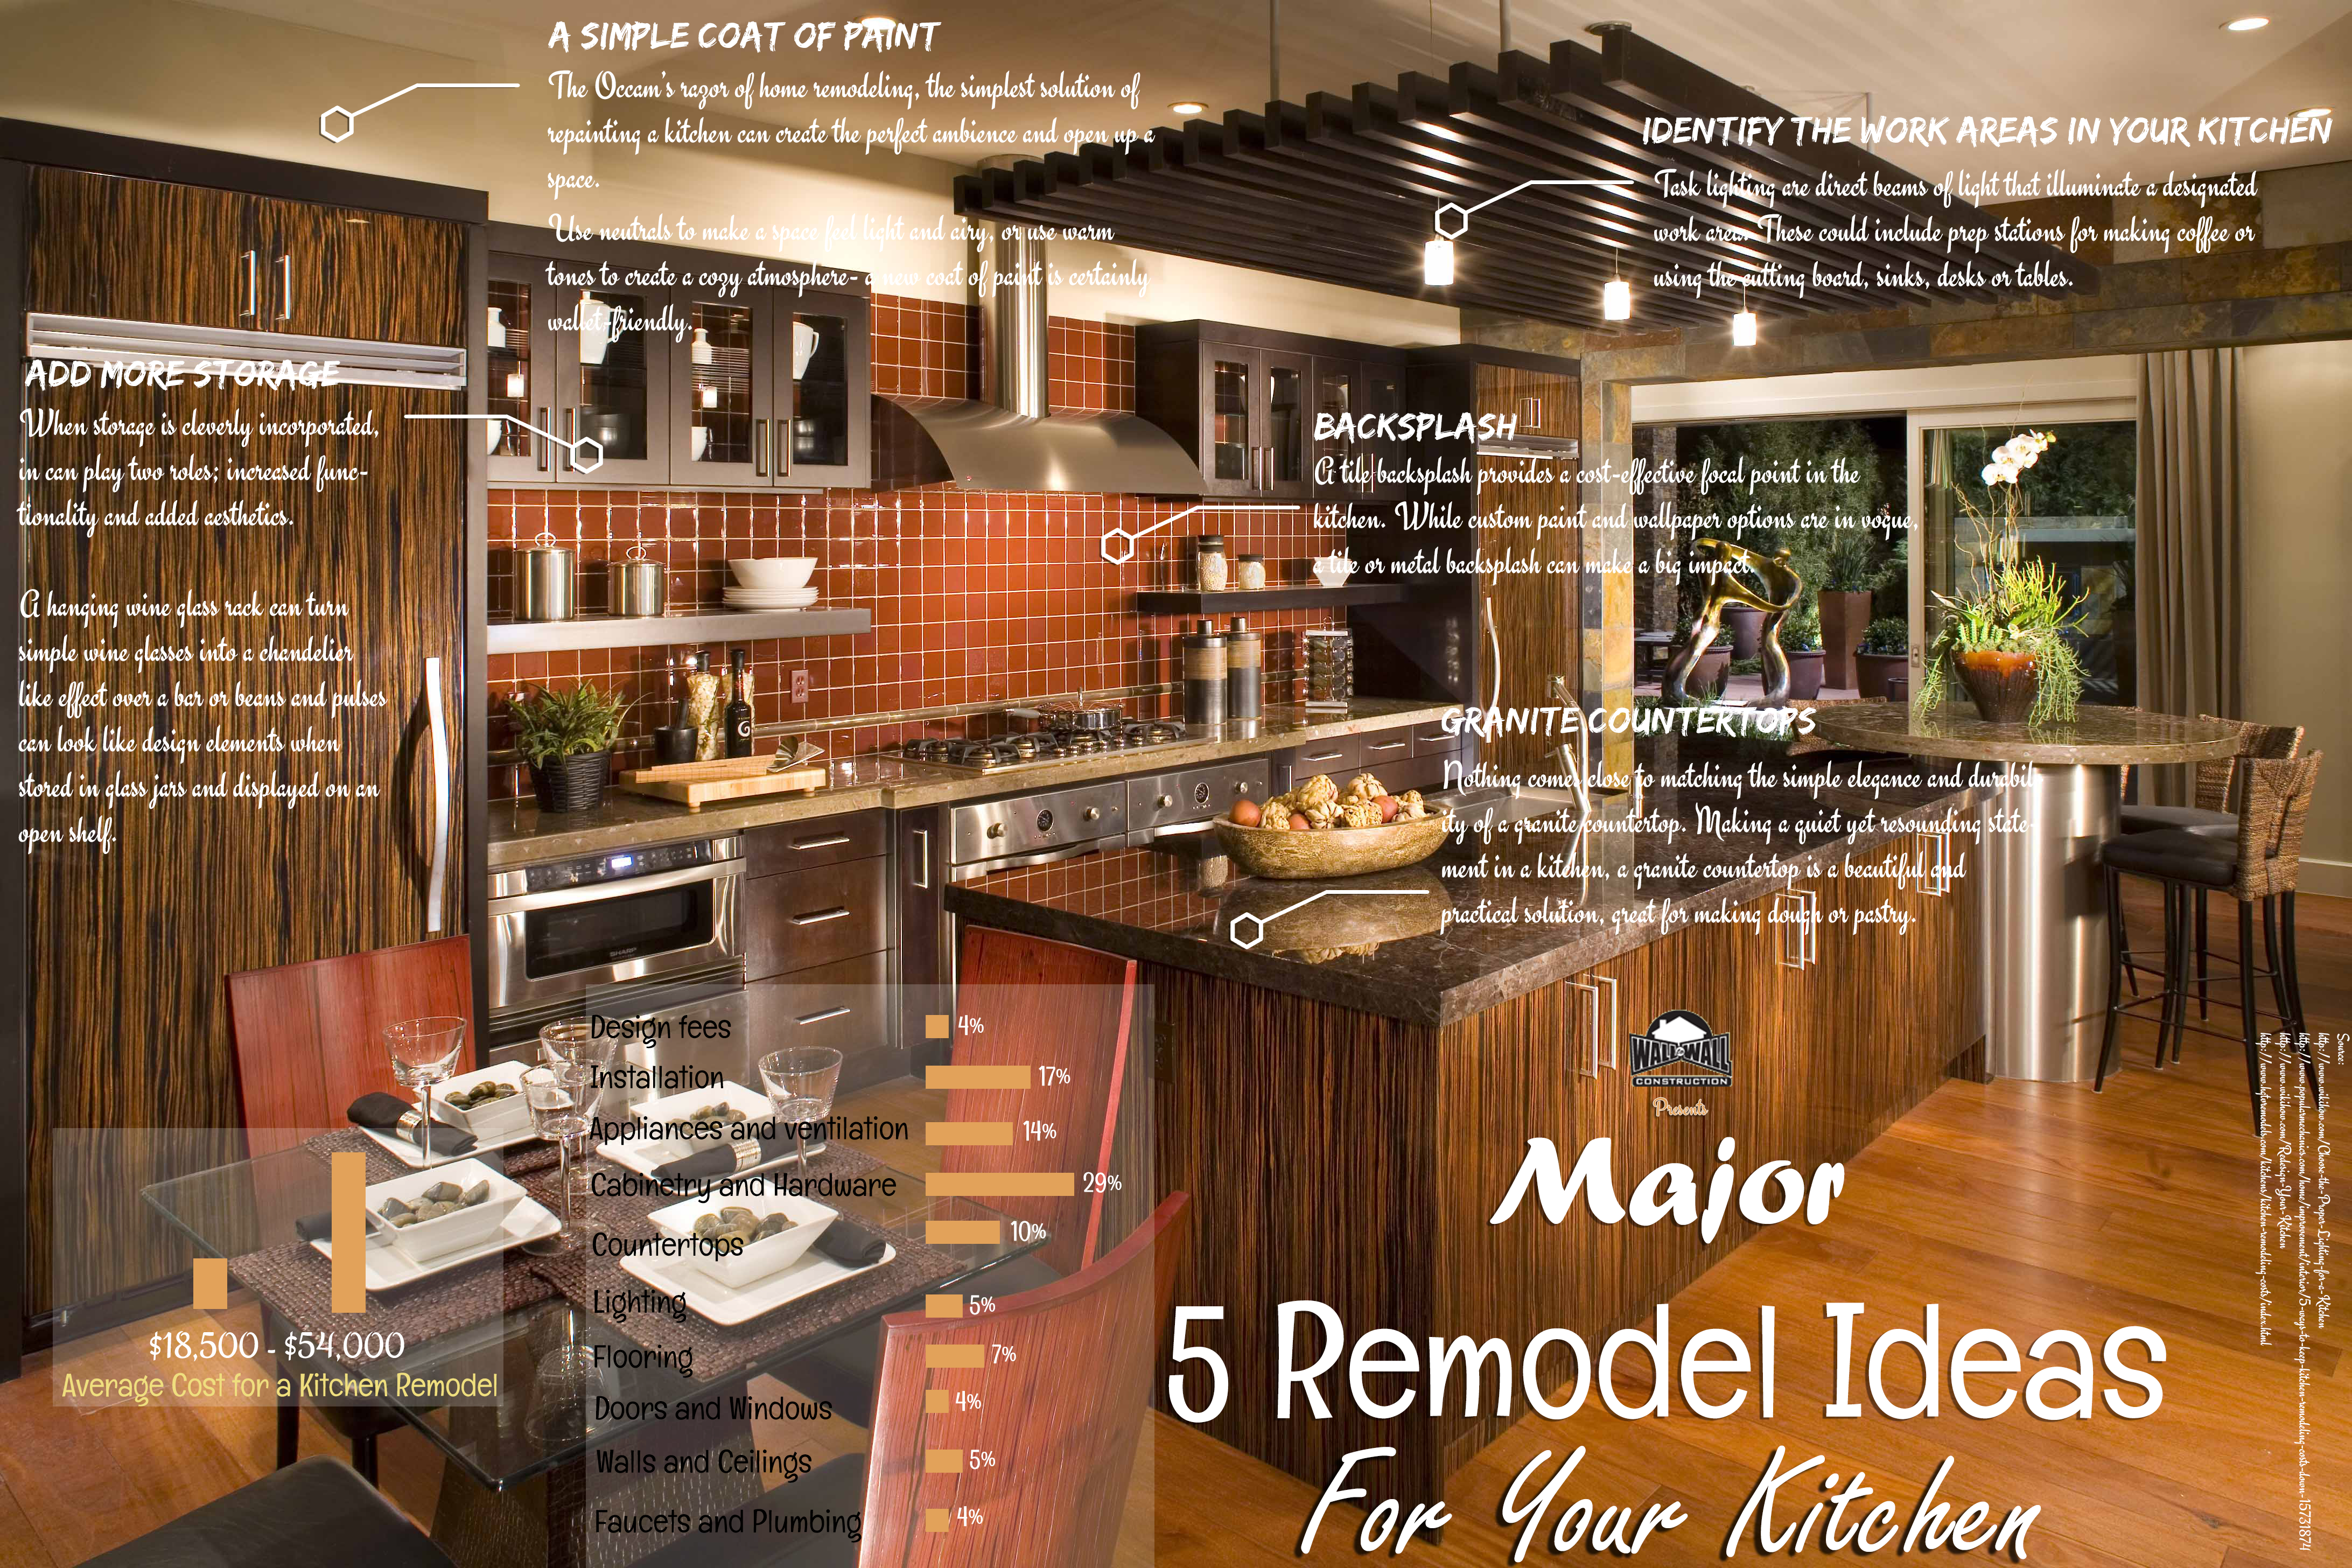 Major: 5 Remodel Ideas For Your Kitchen | Visual.ly on ideas for remodeling basement, ideas for remodeling garage, ideas for remodeling home, ideas for kitchen countertops, ideas for remodeling attic, ideas for remodeling bedrooms, ideas for kitchen remodel, ideas for remodeling a house,